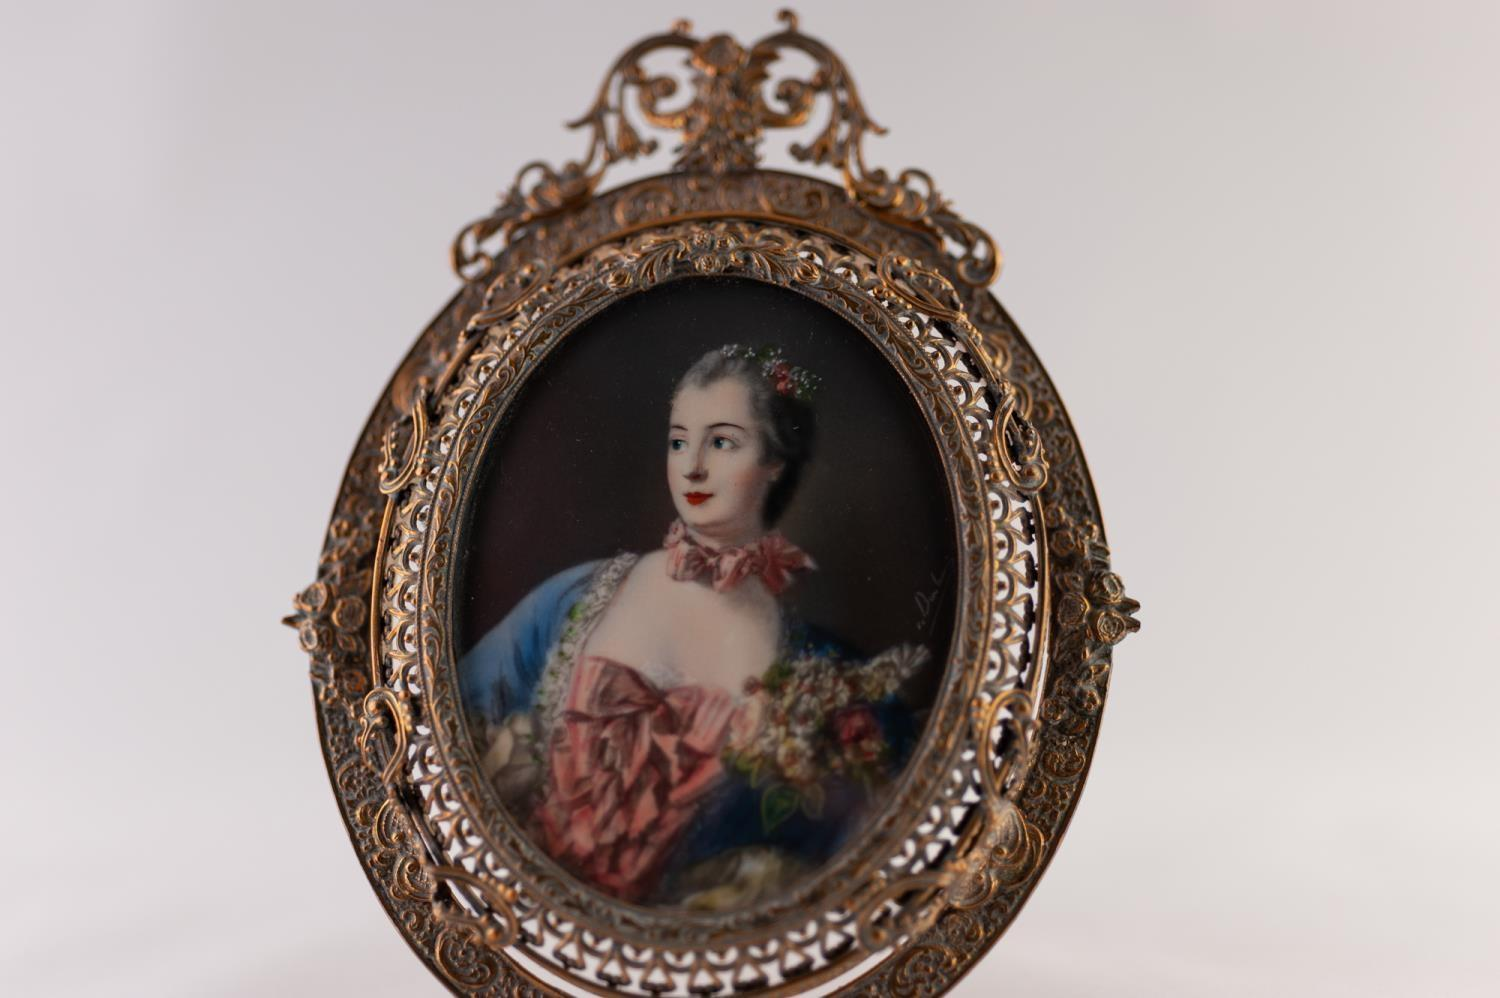 Lot 923 - A LATE 19TH CENTURY FRENCH PASTICHE OVAL PORTRAIT MINIATURE ON IVORY OF MADAM POMPADOR, contained in